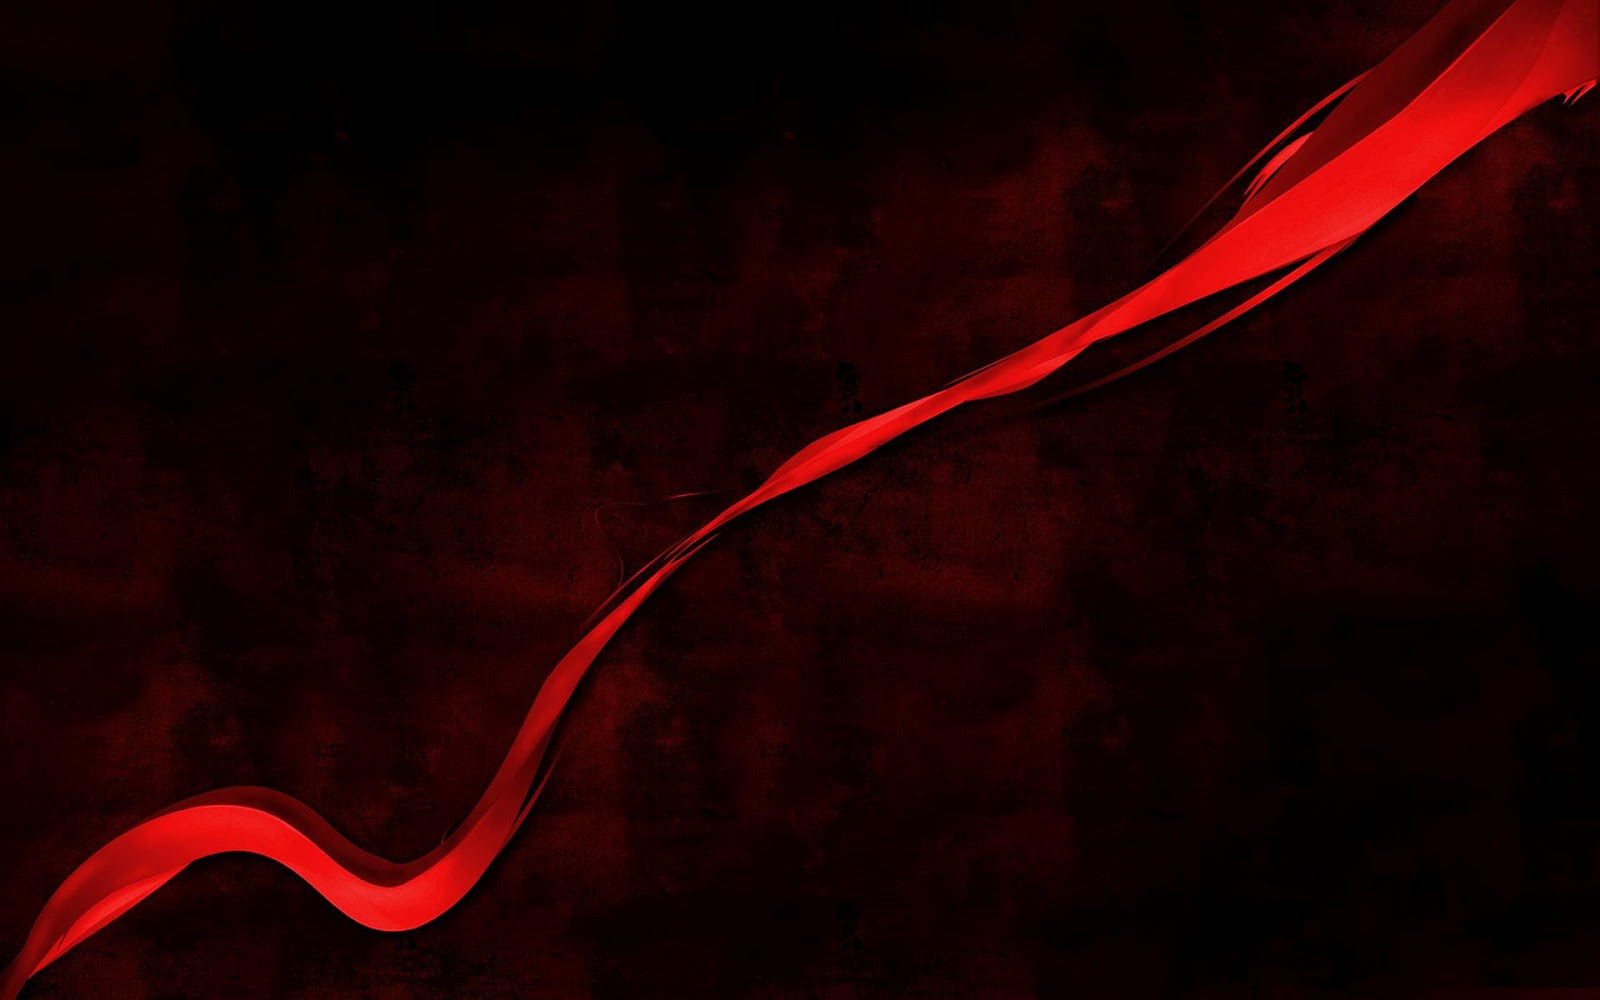 Red rippan 3d new xp wallpapers windows7windows8 xp7 pc for Wallpaper mobile home walls